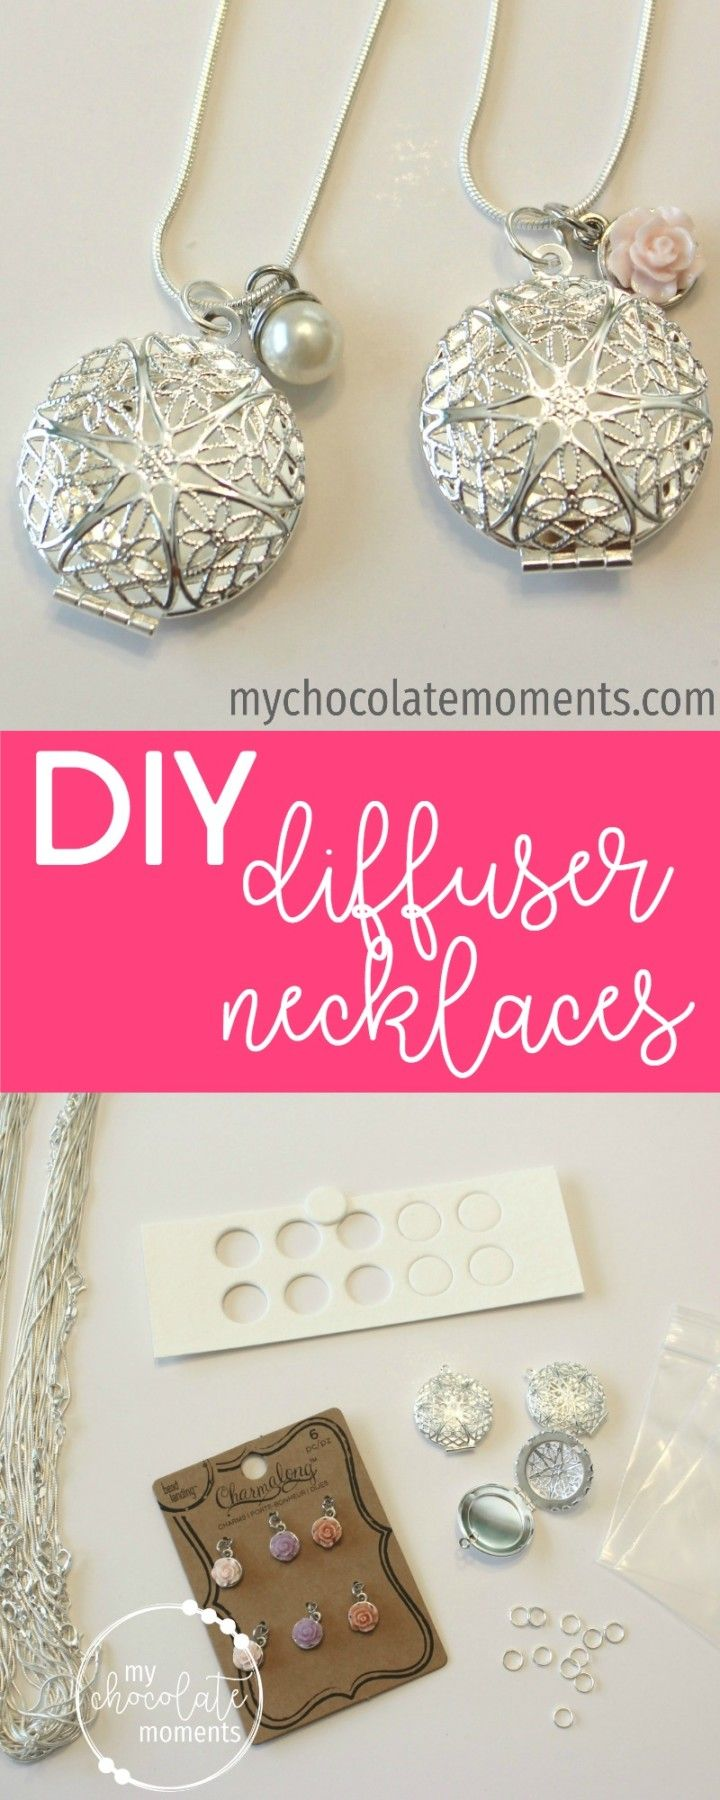 DIY essential oil diffuser necklaces | supplies, instructions, and how to